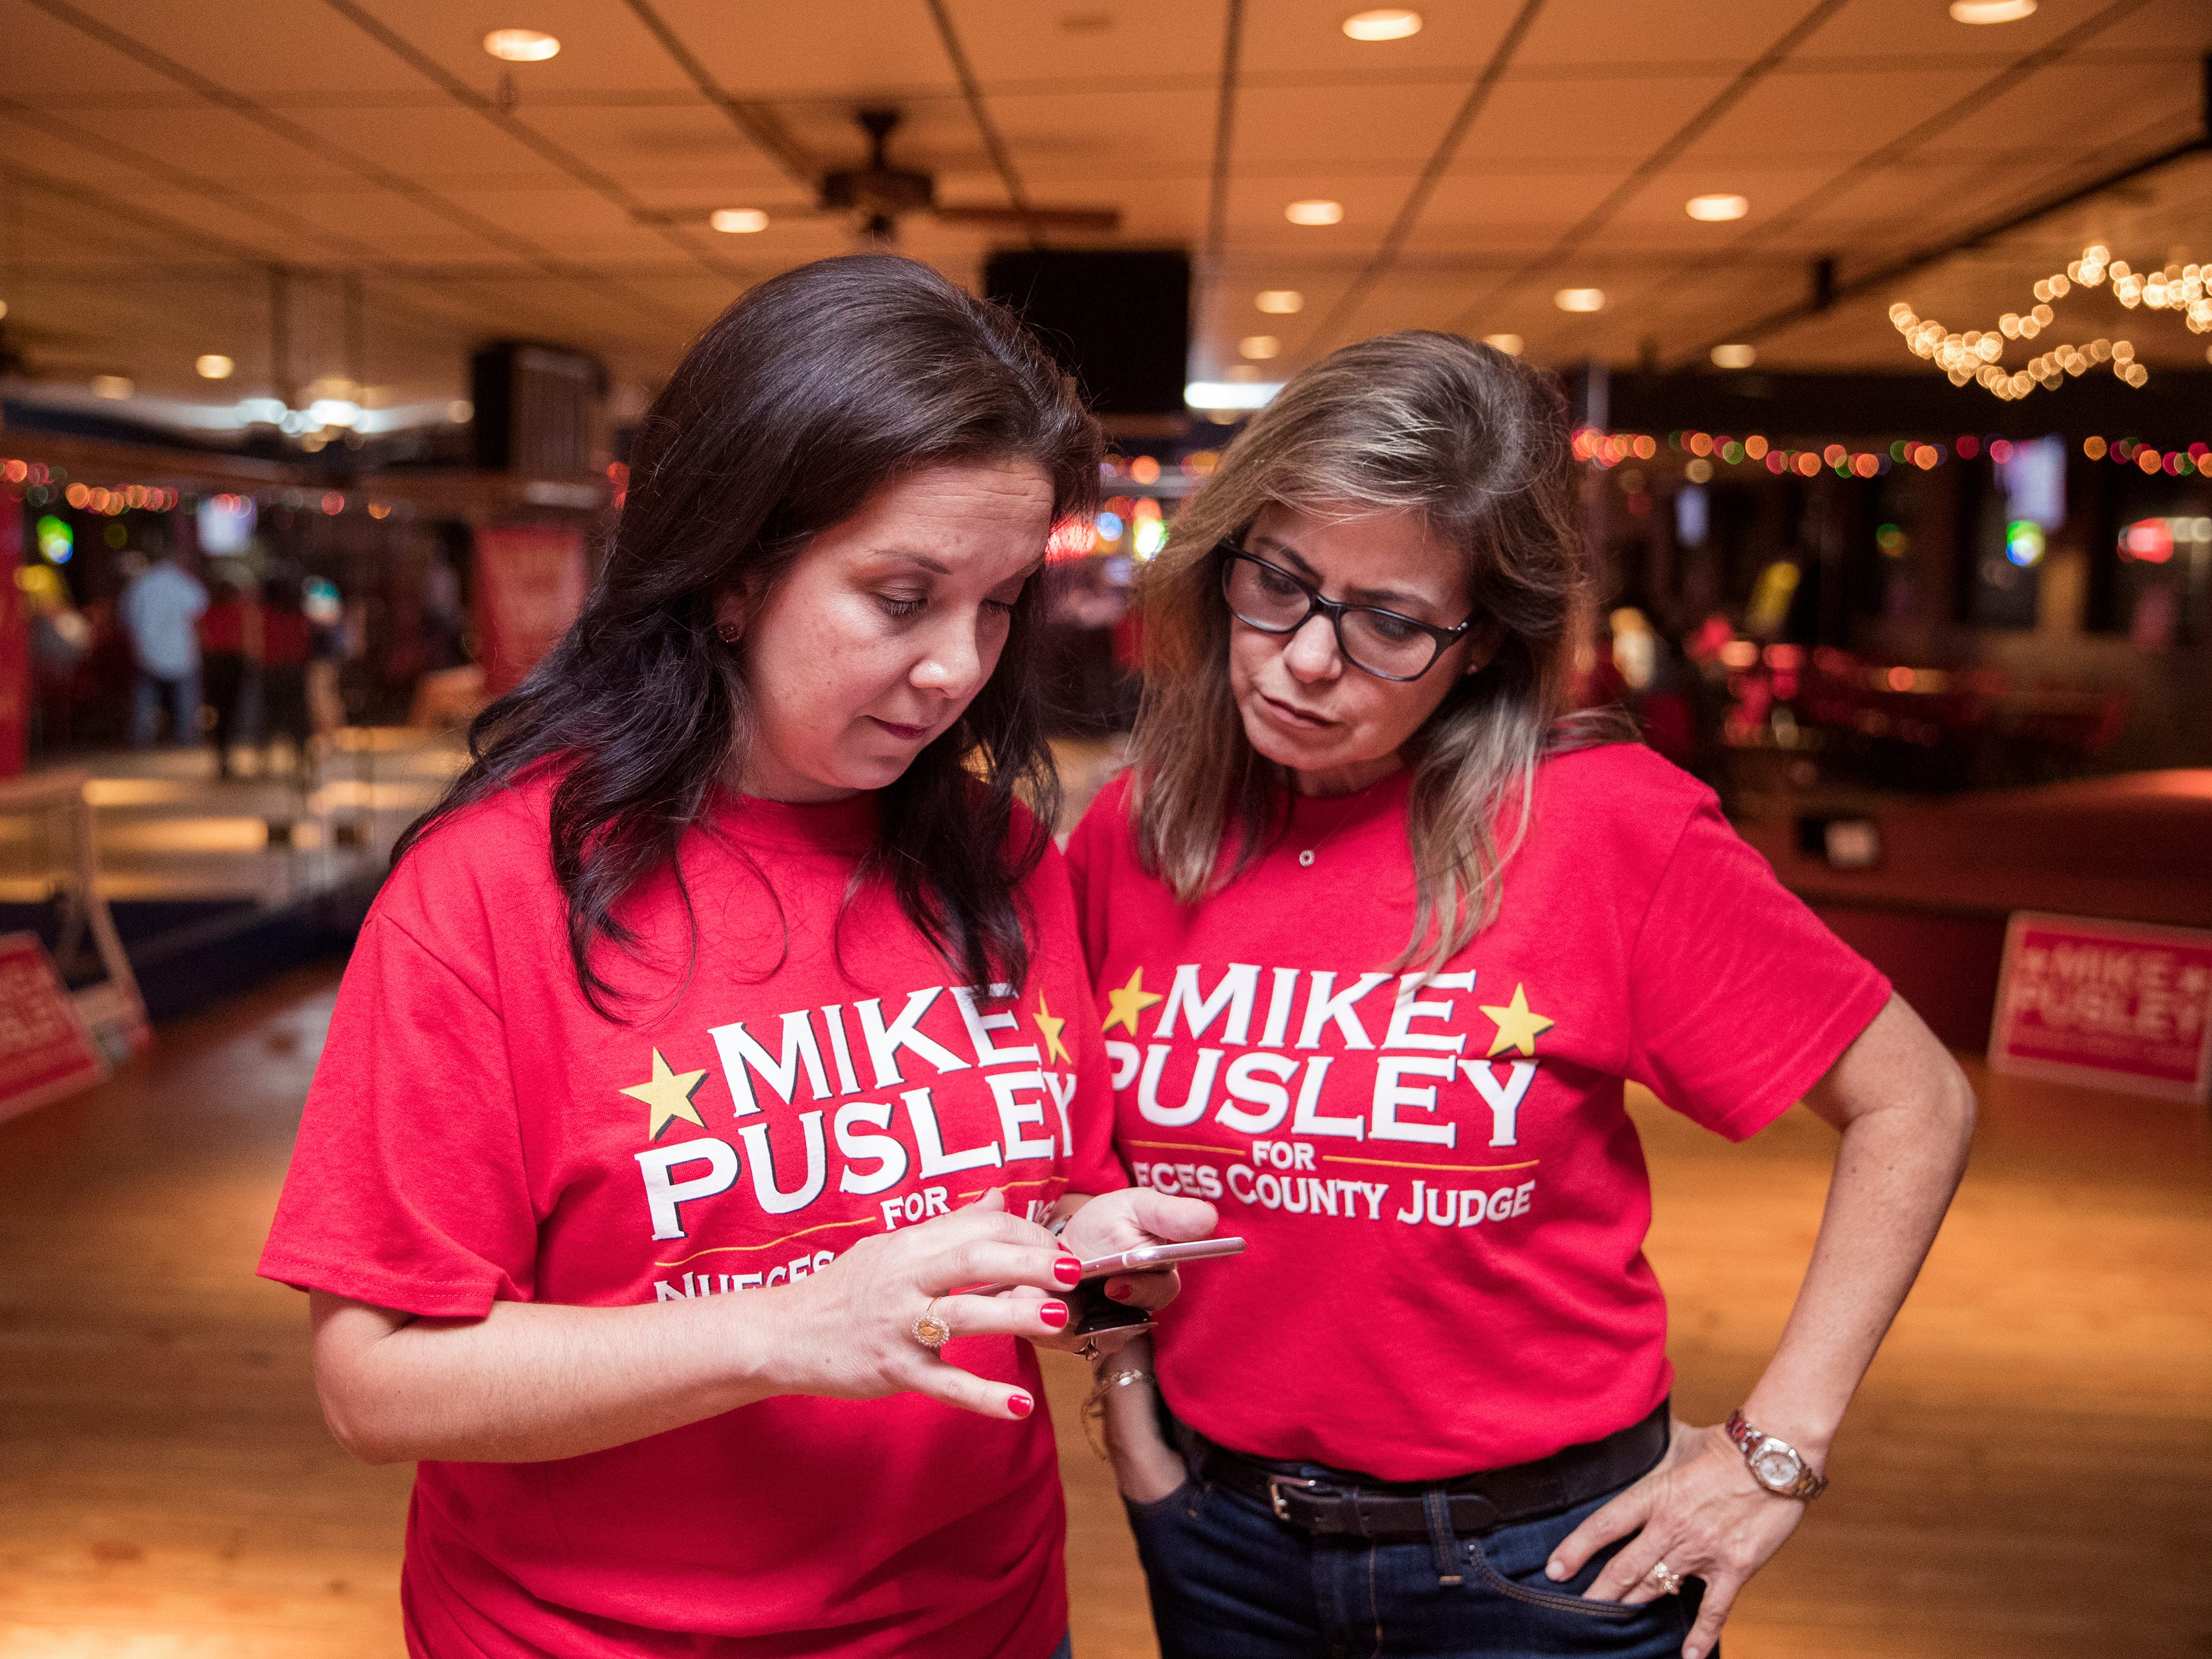 Members of the Mike Pusley campaign team, Jessica Davila-Burnett (left) and Pam OÕConnor, look at early voting numbers for the Nueces County Judge race at the Bar-B-Q Man on Tuesday, November 6, 2018.